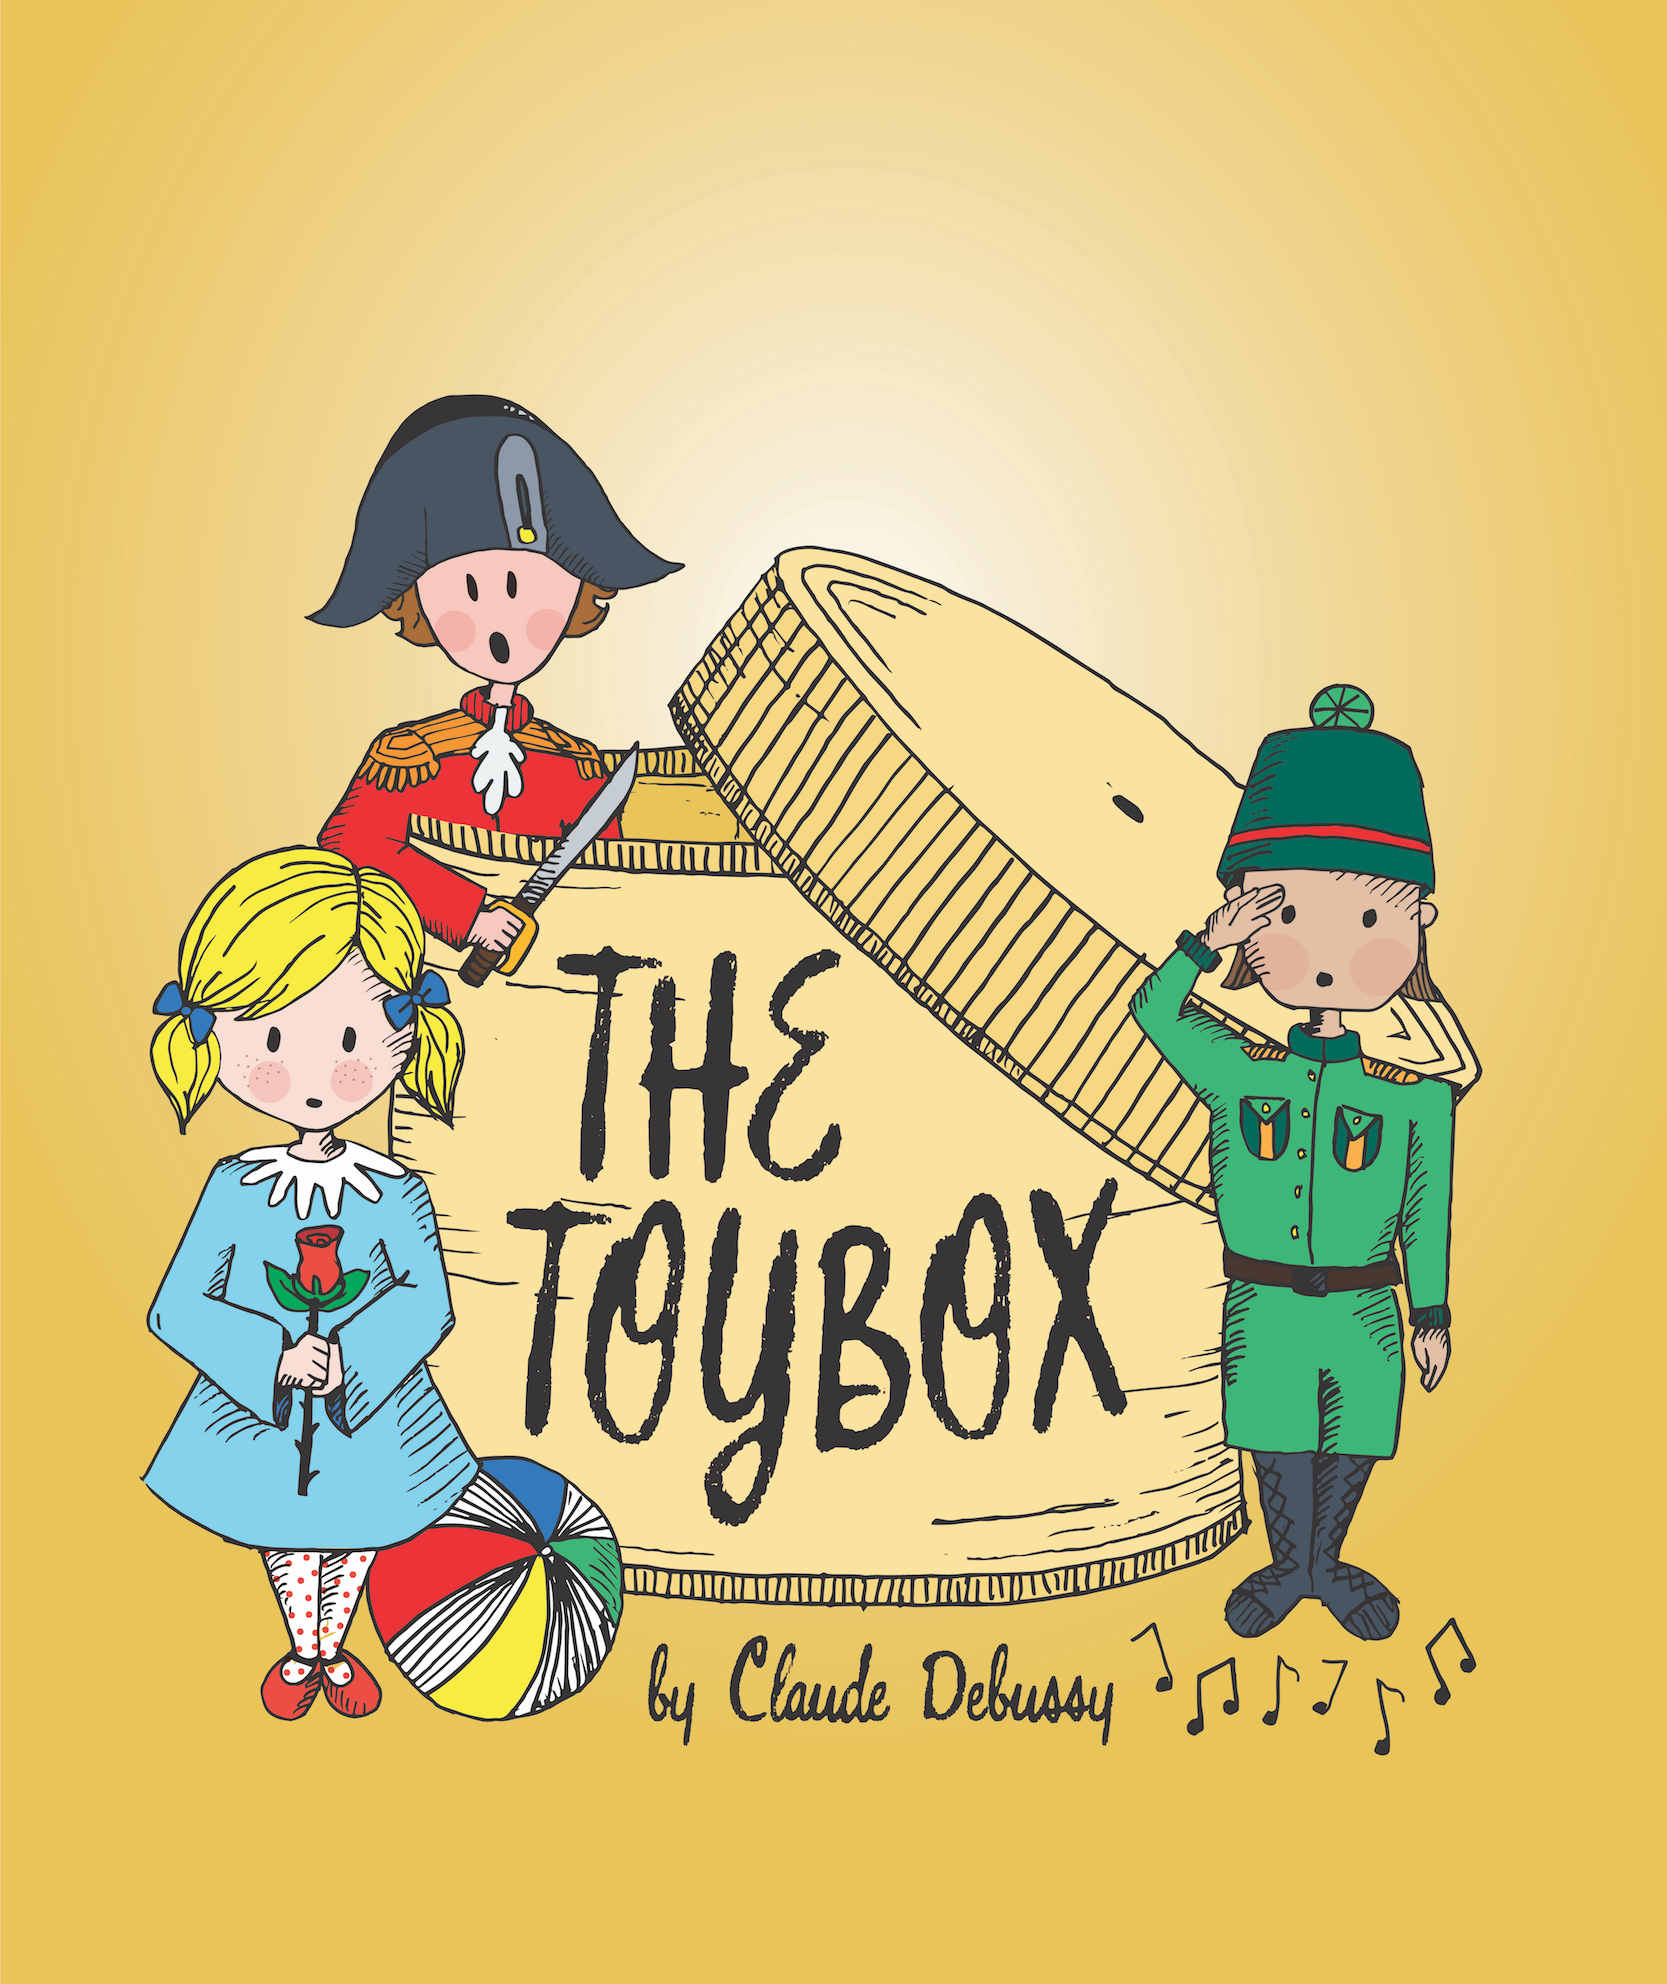 The Toybox - Young audiences are taken on a musical journey this July school holiday to discover the magical secrets of The Toybox through Debussy's enigmatic music and storytelling. Wait and see what happens when night falls… kids will never tire of tales where toys come to life!When: 10.30am and 12pm 9th July 2019 and 10.30am 10th July 2019Tickets: Adult $25, Concession $19. Available https://riversideparramatta.com.au/show/the-toybox/ or from the Box Office (02) 8839 3399. Discounts available for Riverside Theatres' Members. Transaction fees: phone $4.60, web $3.60 and counter $2.60.Where: Riverside Theatres - corner of Church and Market Sts, Parramatta